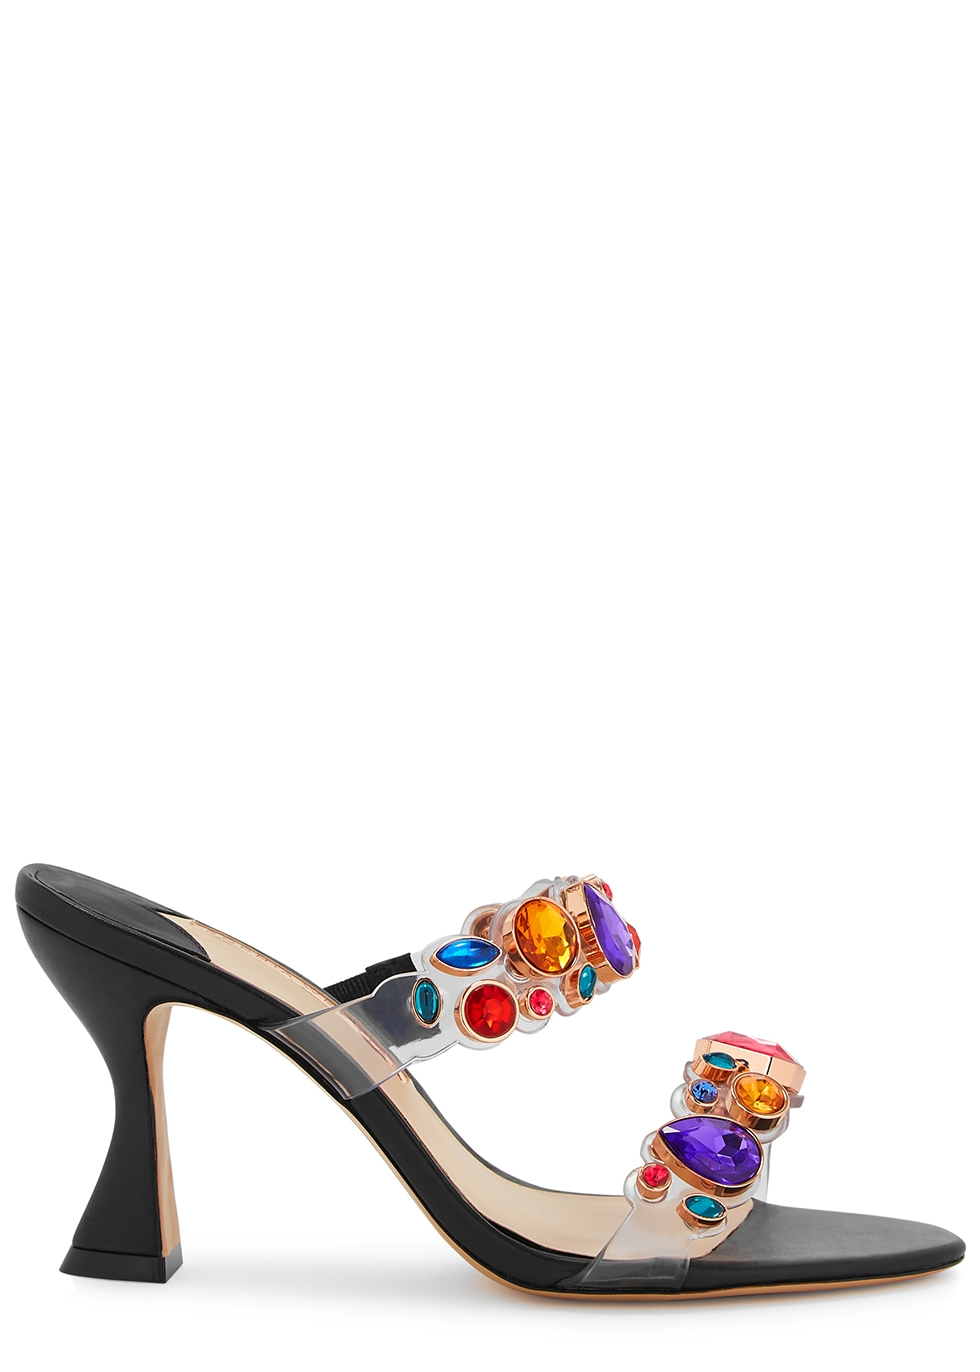 Ritzy 85 crystal-embellished mules